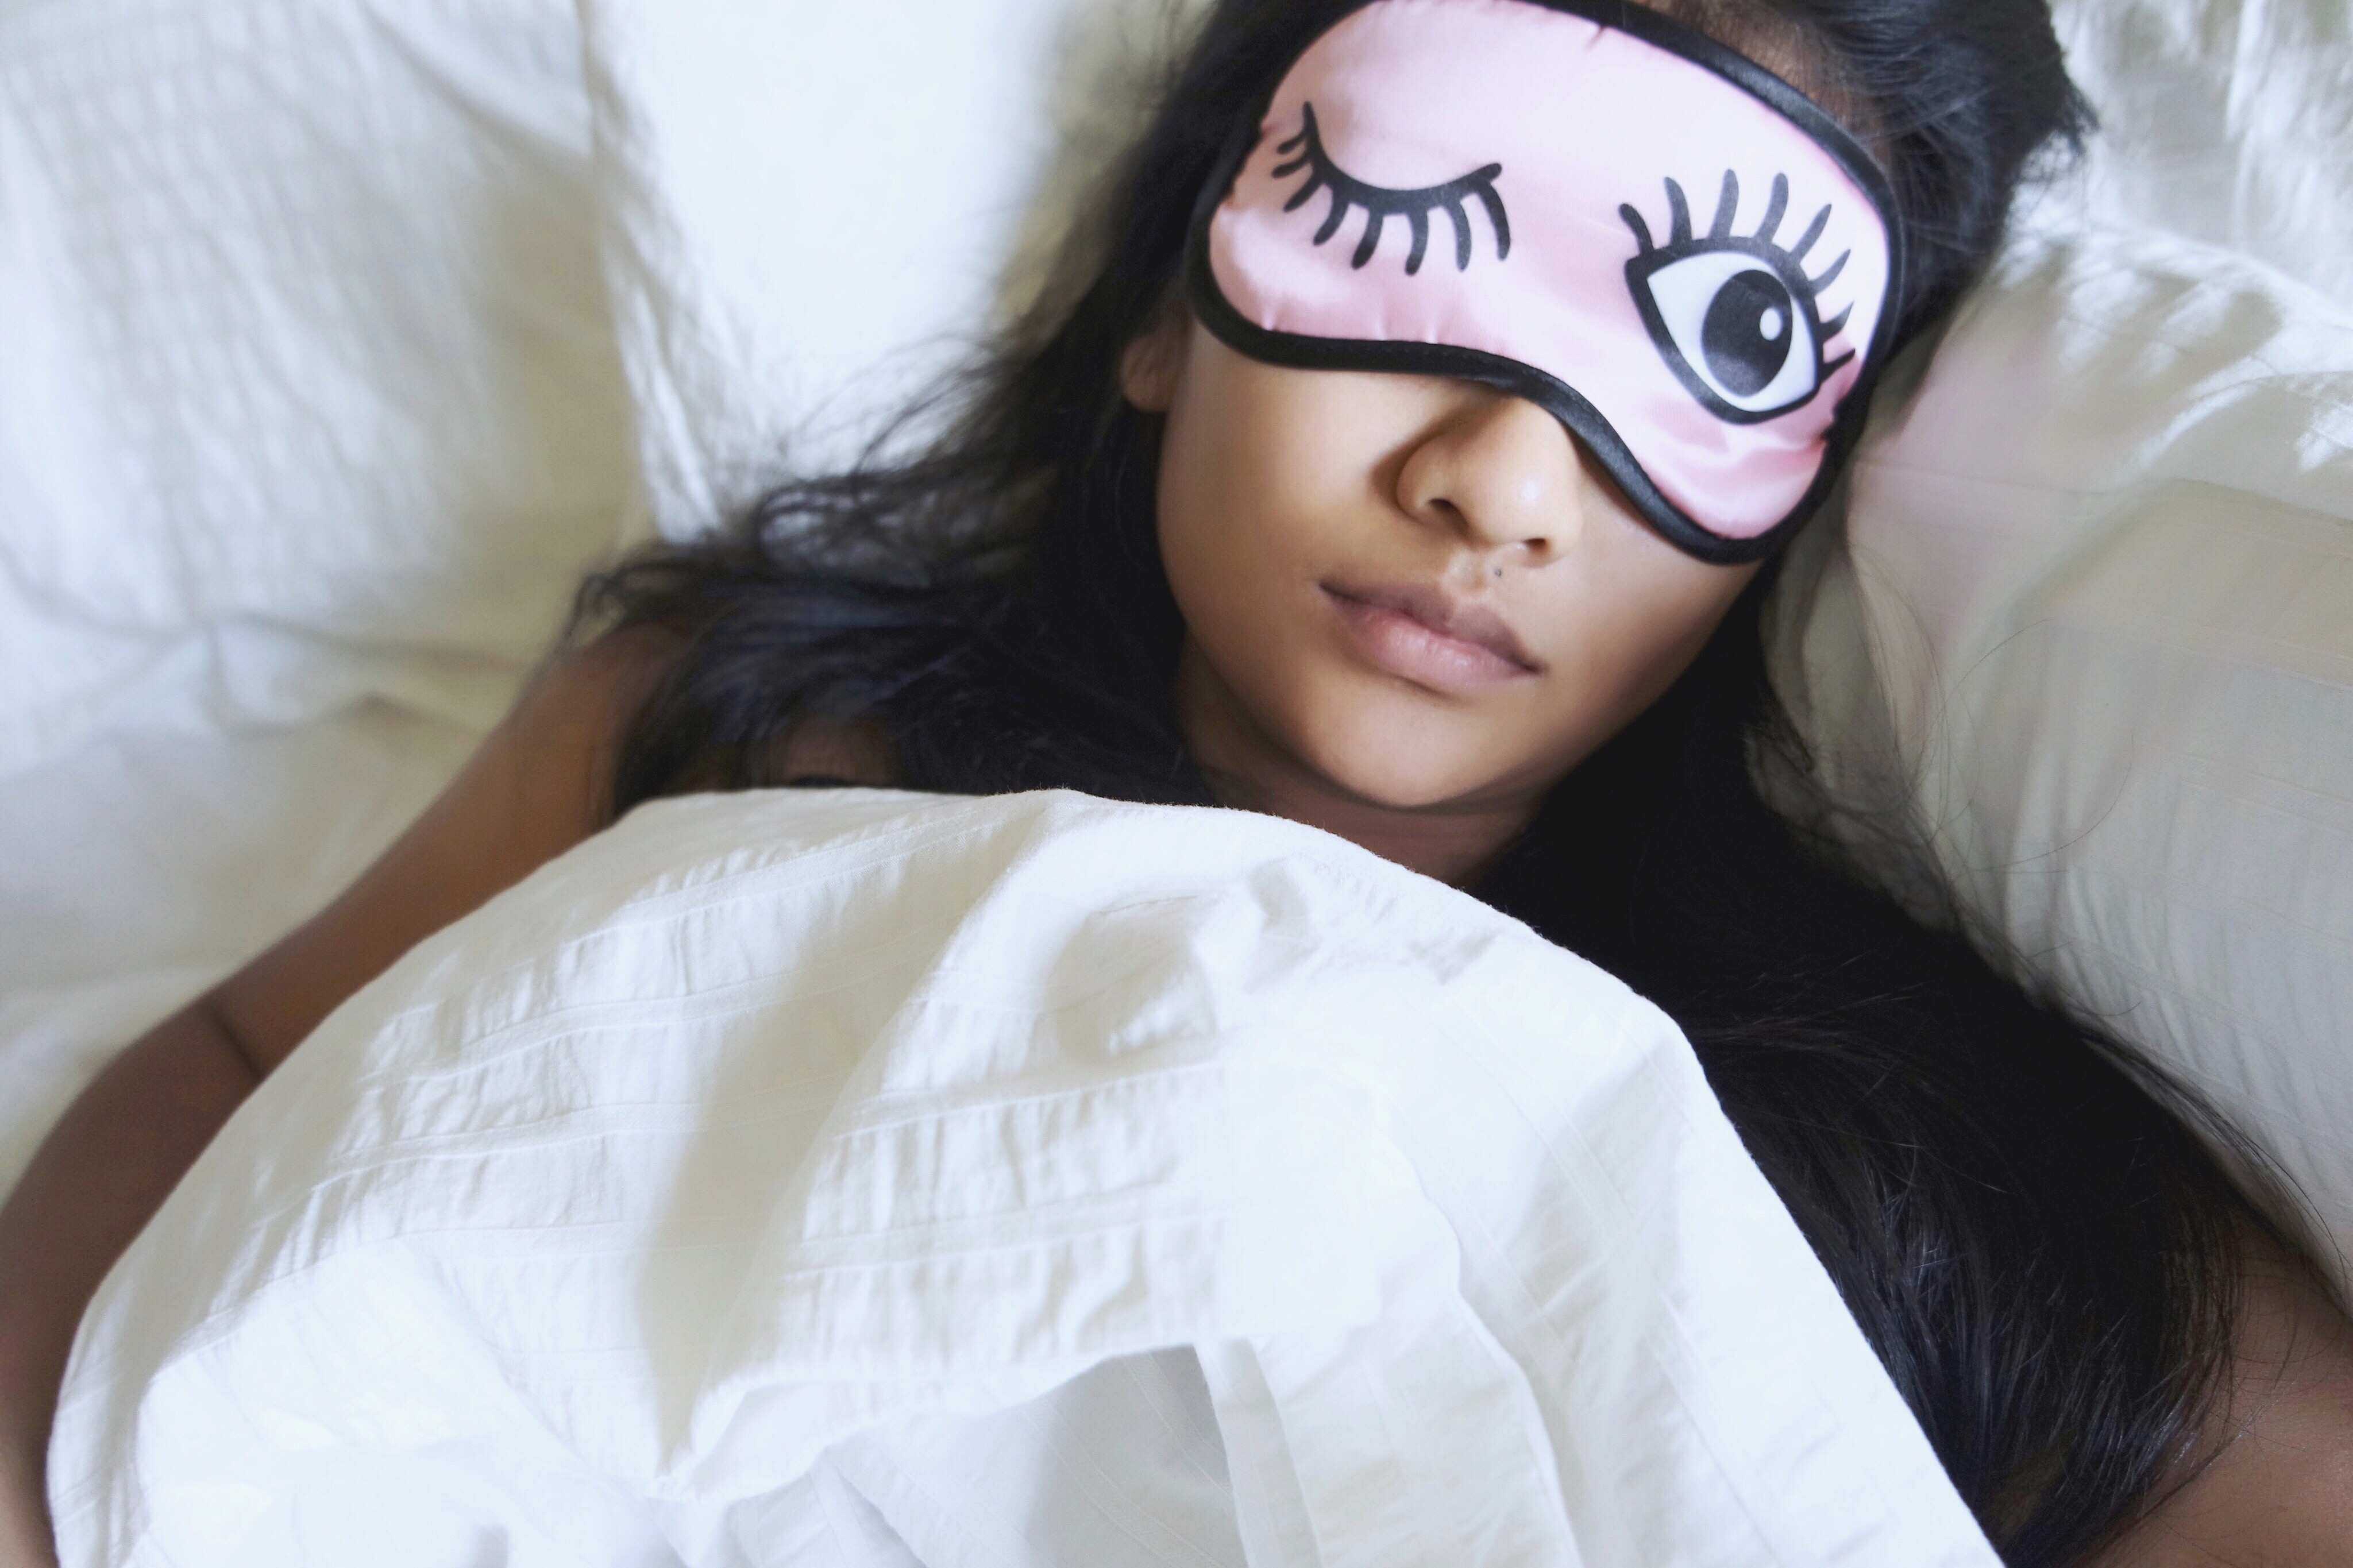 High Angle View Of Woman Wearing Eye Mask While Sleeping In Bed